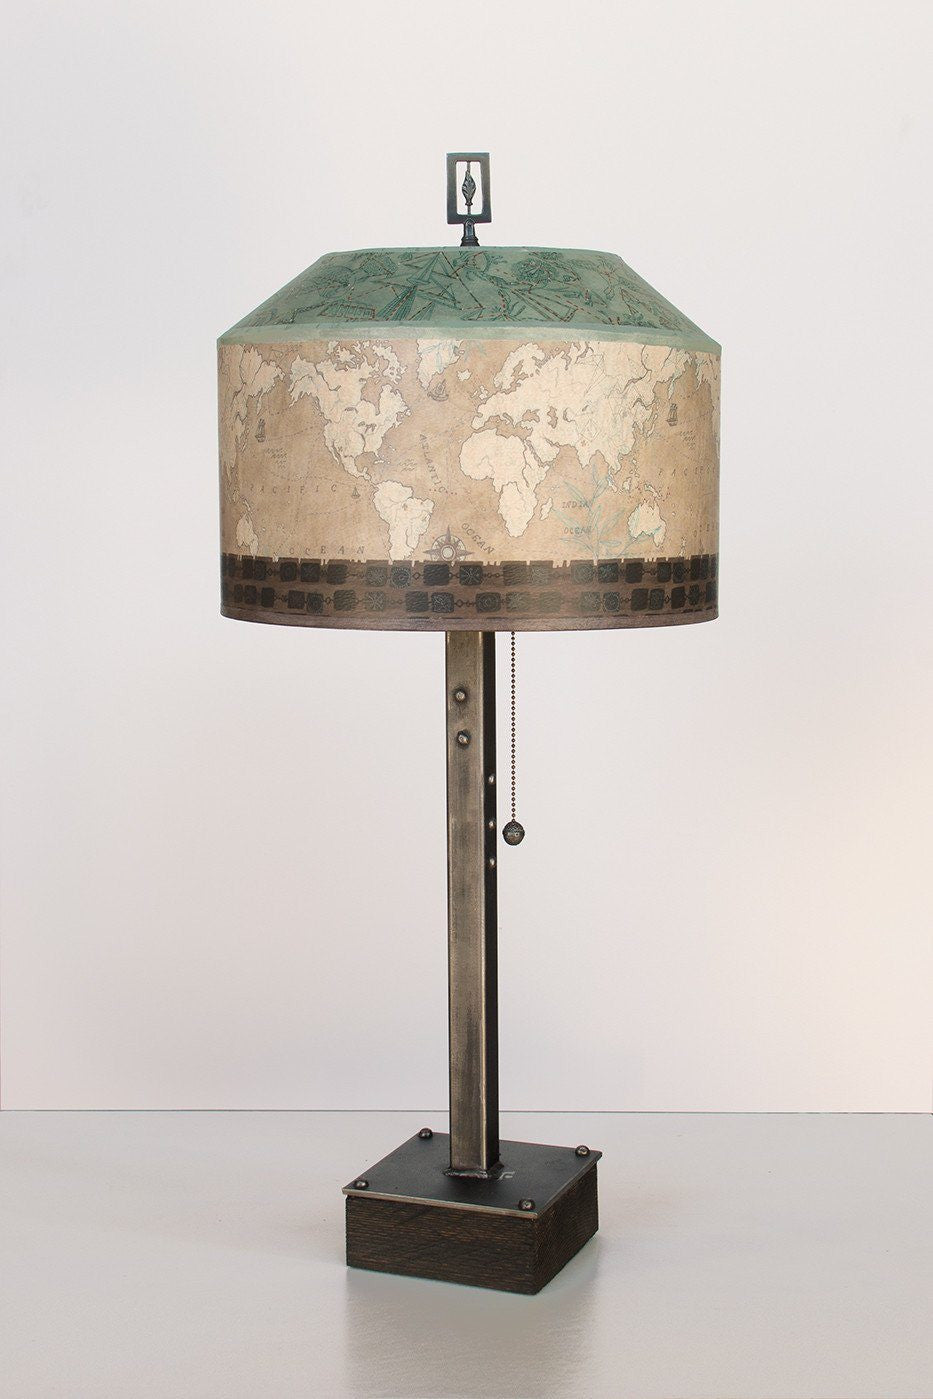 Steel Table Lamp on Wood with Medium Canopy Shade in Sand Map